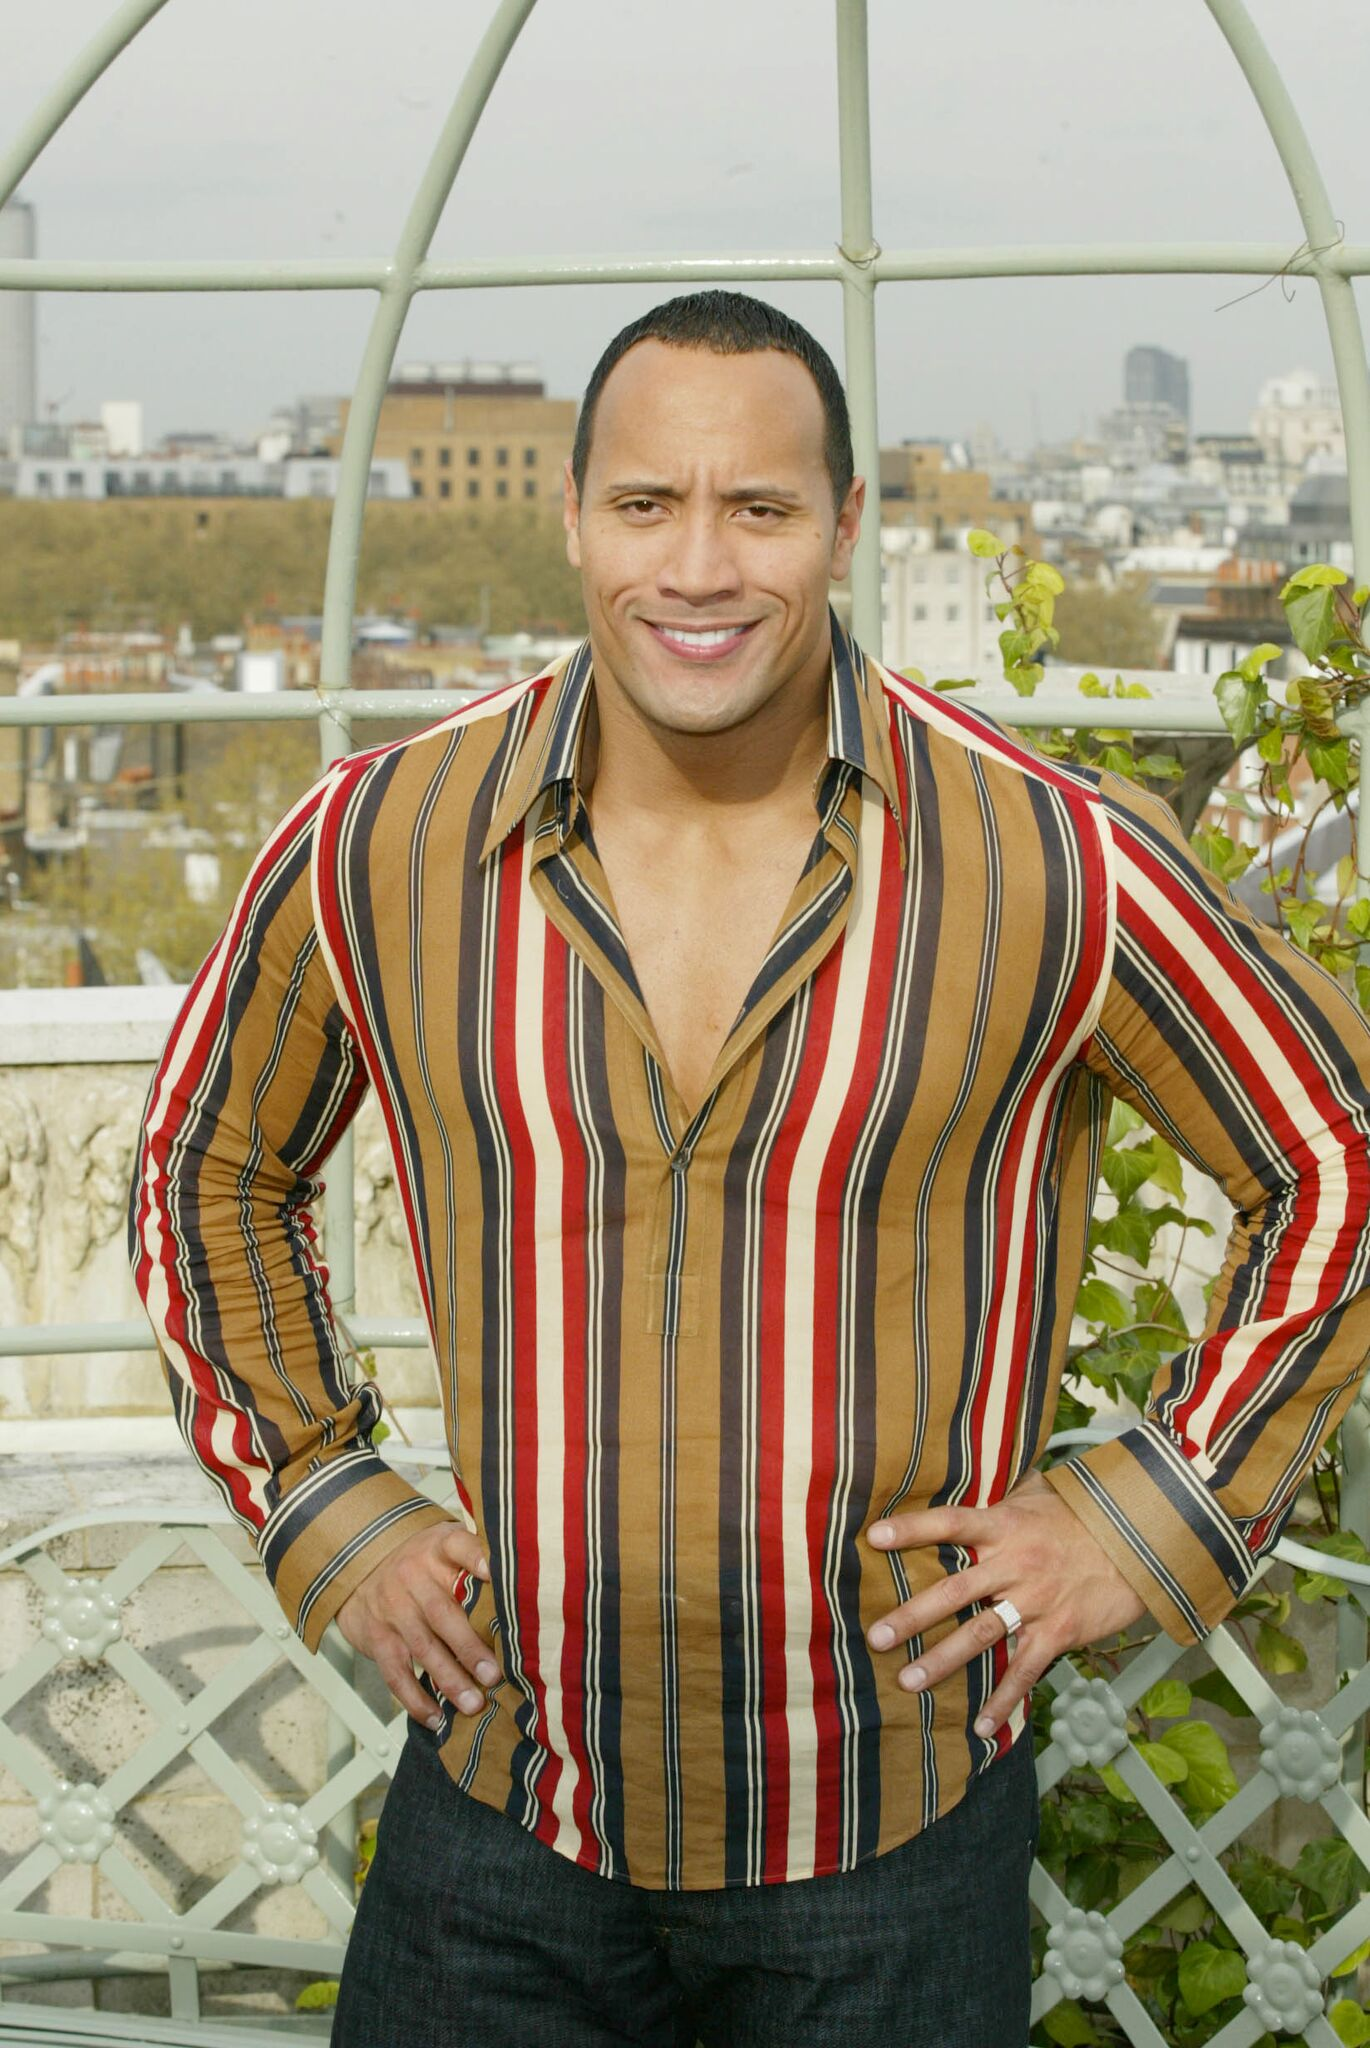 Wrestler and actor The Rock (real name Dwayne Johnson) smiles for the cameras during a photocall to promote his new movie The Scorpion King | Getty Images